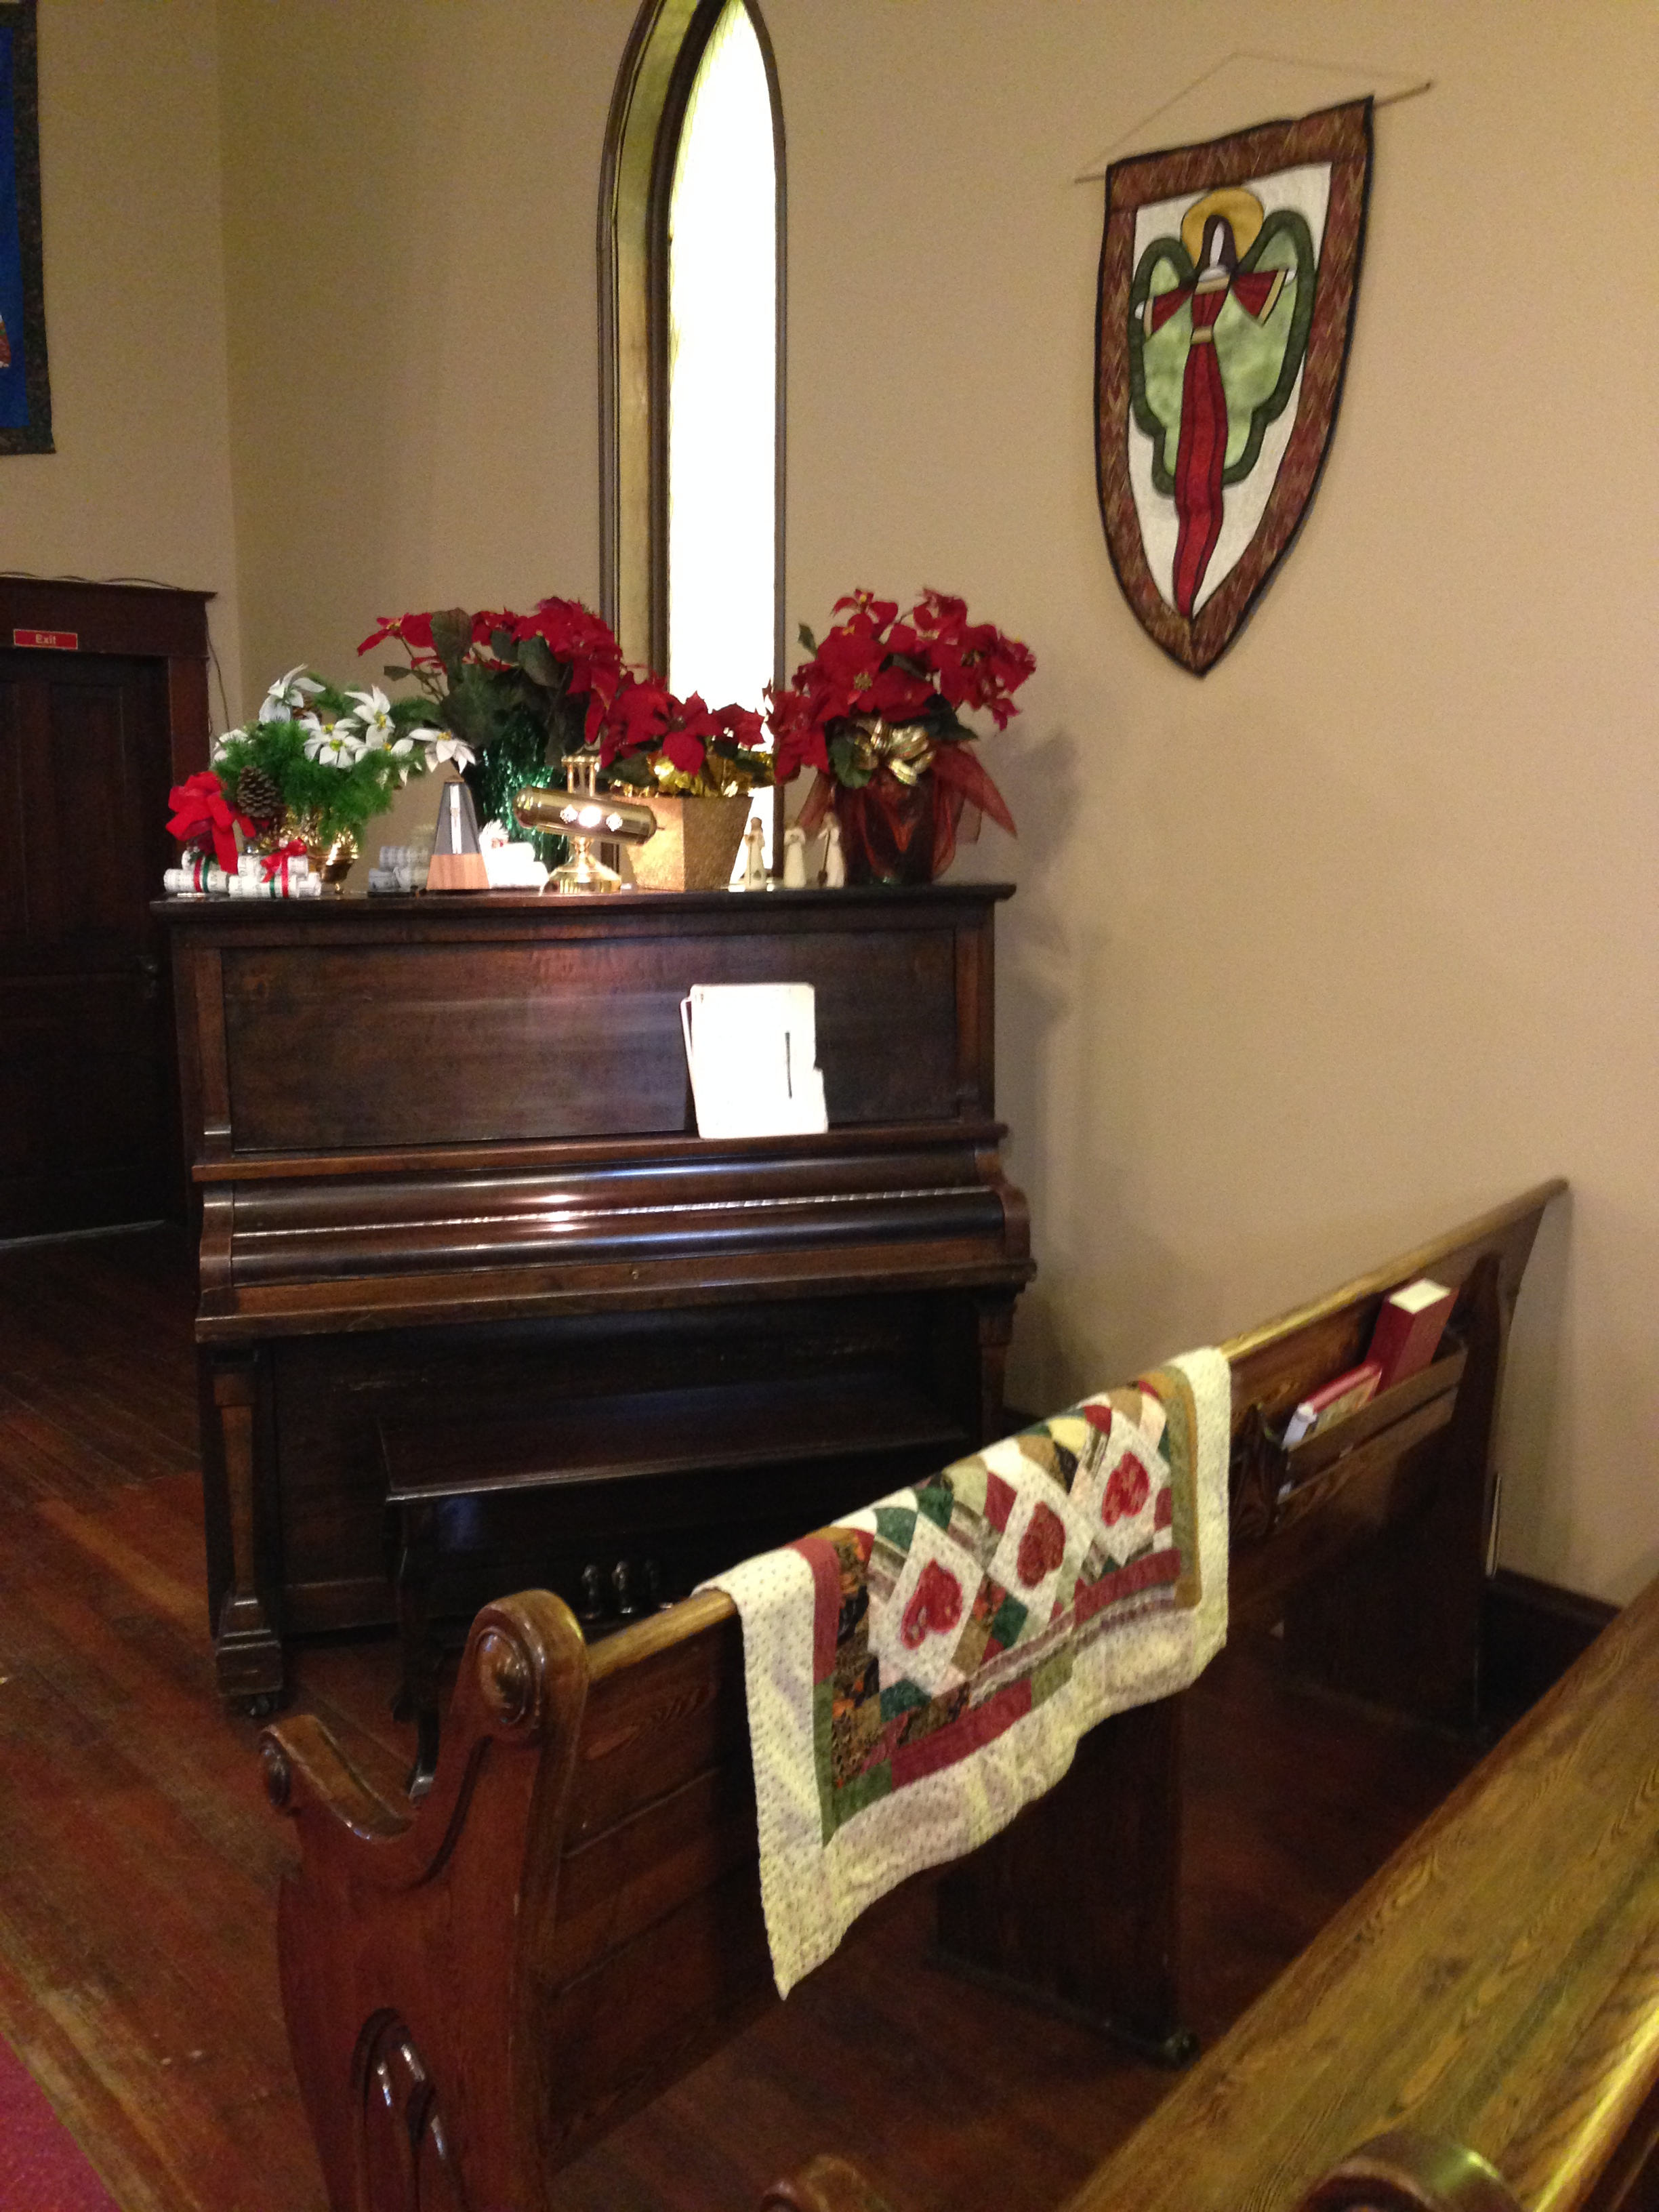 Piano - Christmas decor